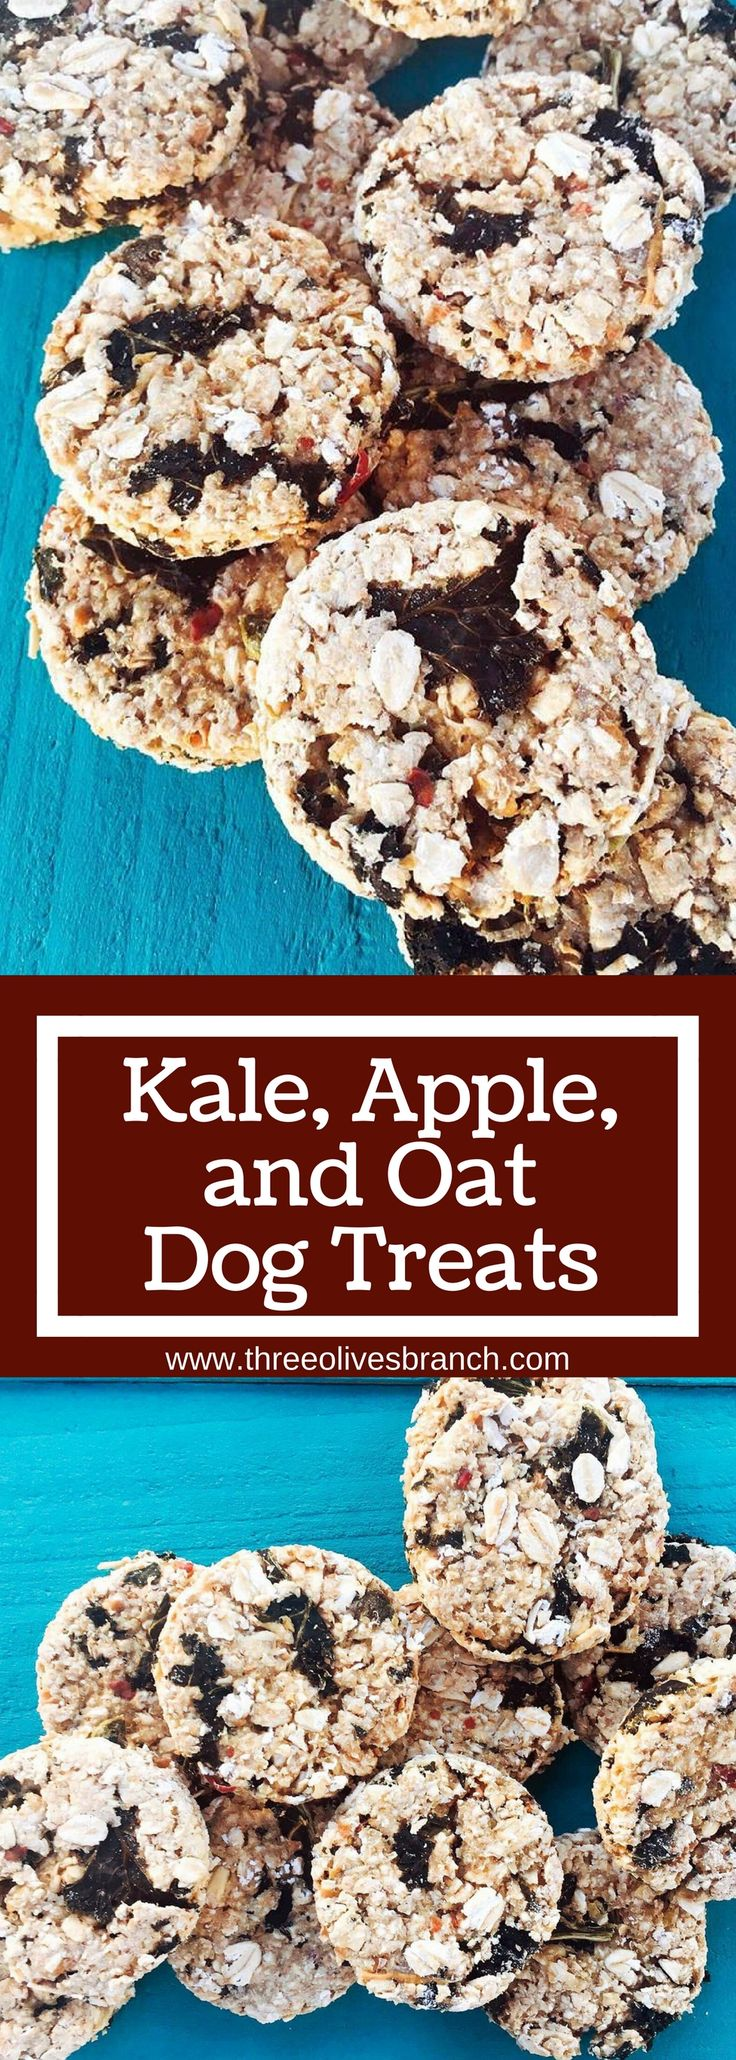 Kale, Apple, and Oat Dog Treats are a great healthy alternative for your pet! Simple to make and full of quality ingredients   www.threeolivesbranch.com